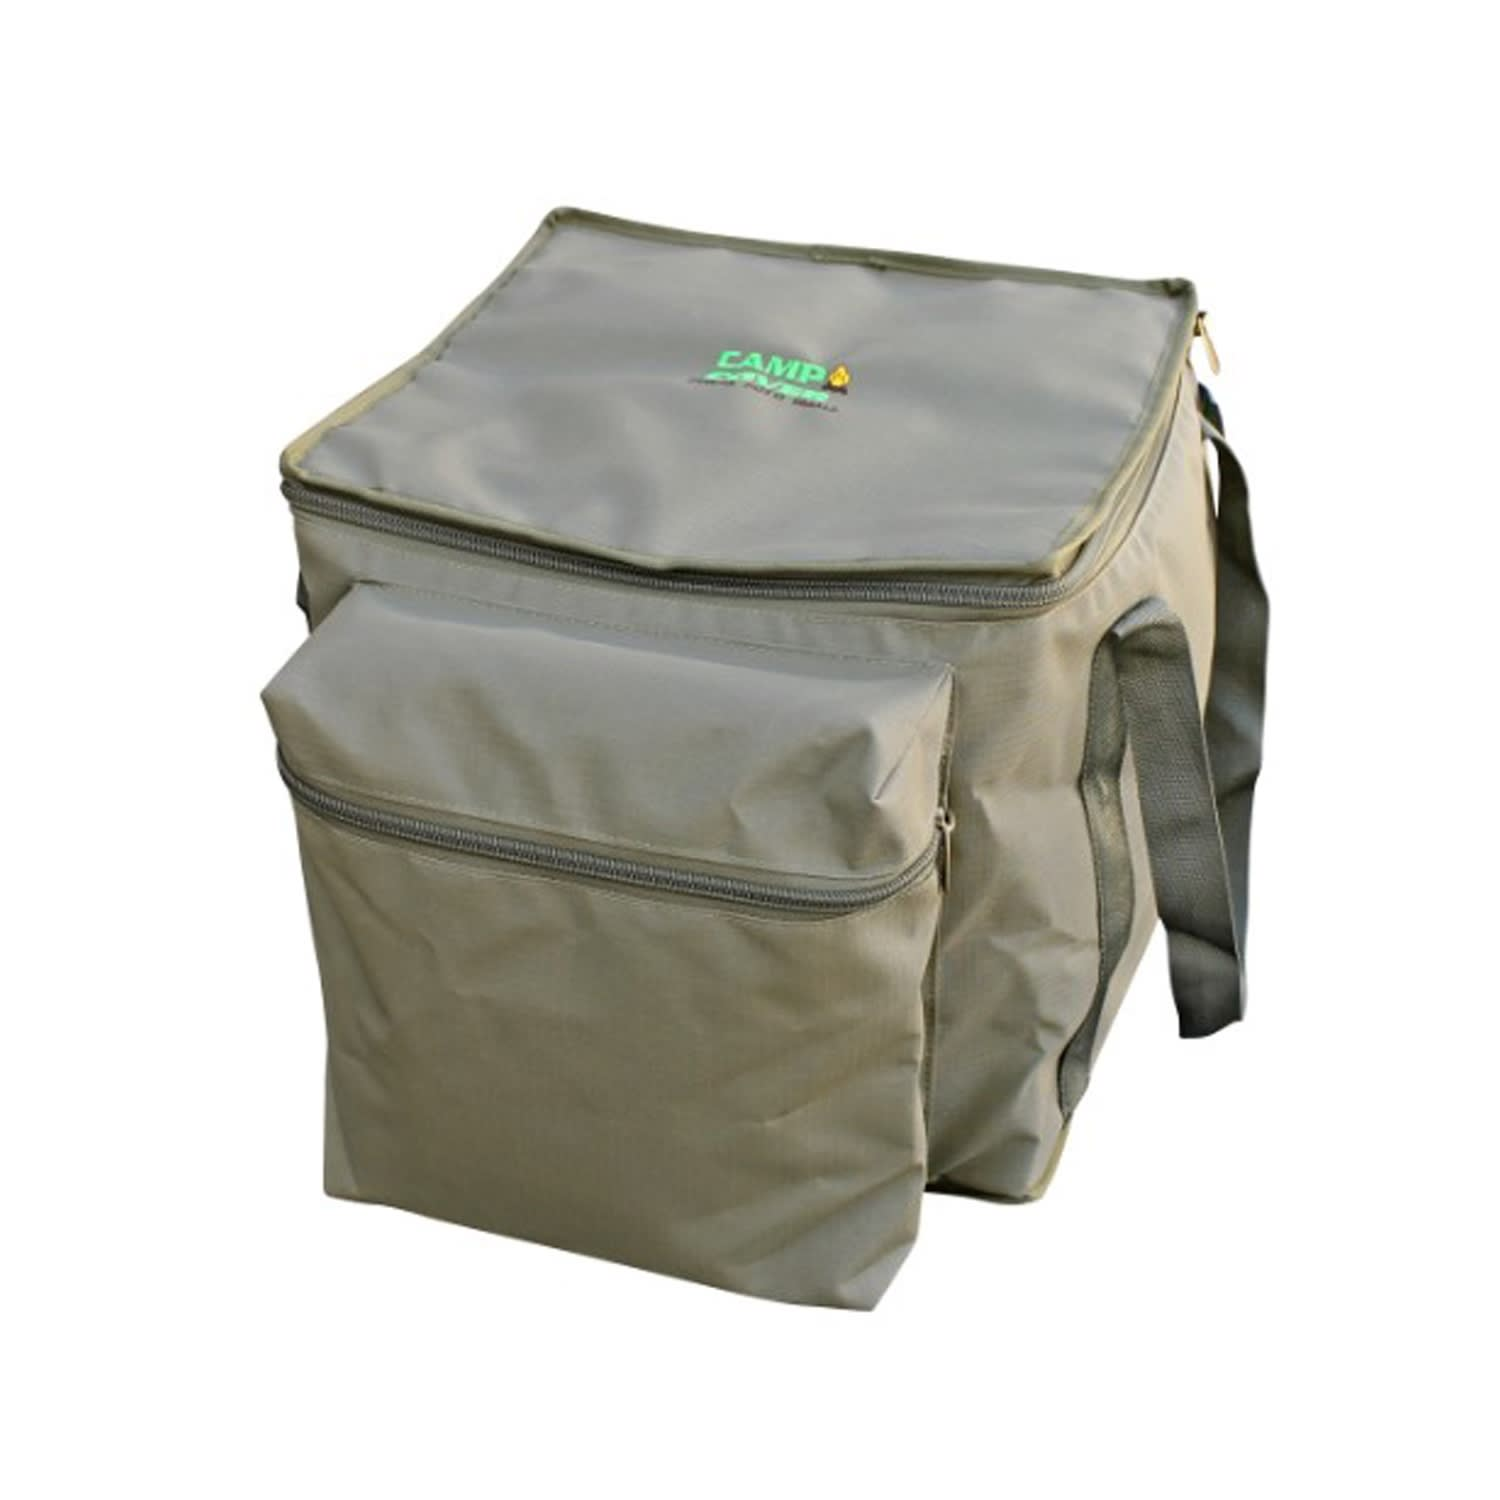 Camp Cover Porta Potti Toilet Cover (small)